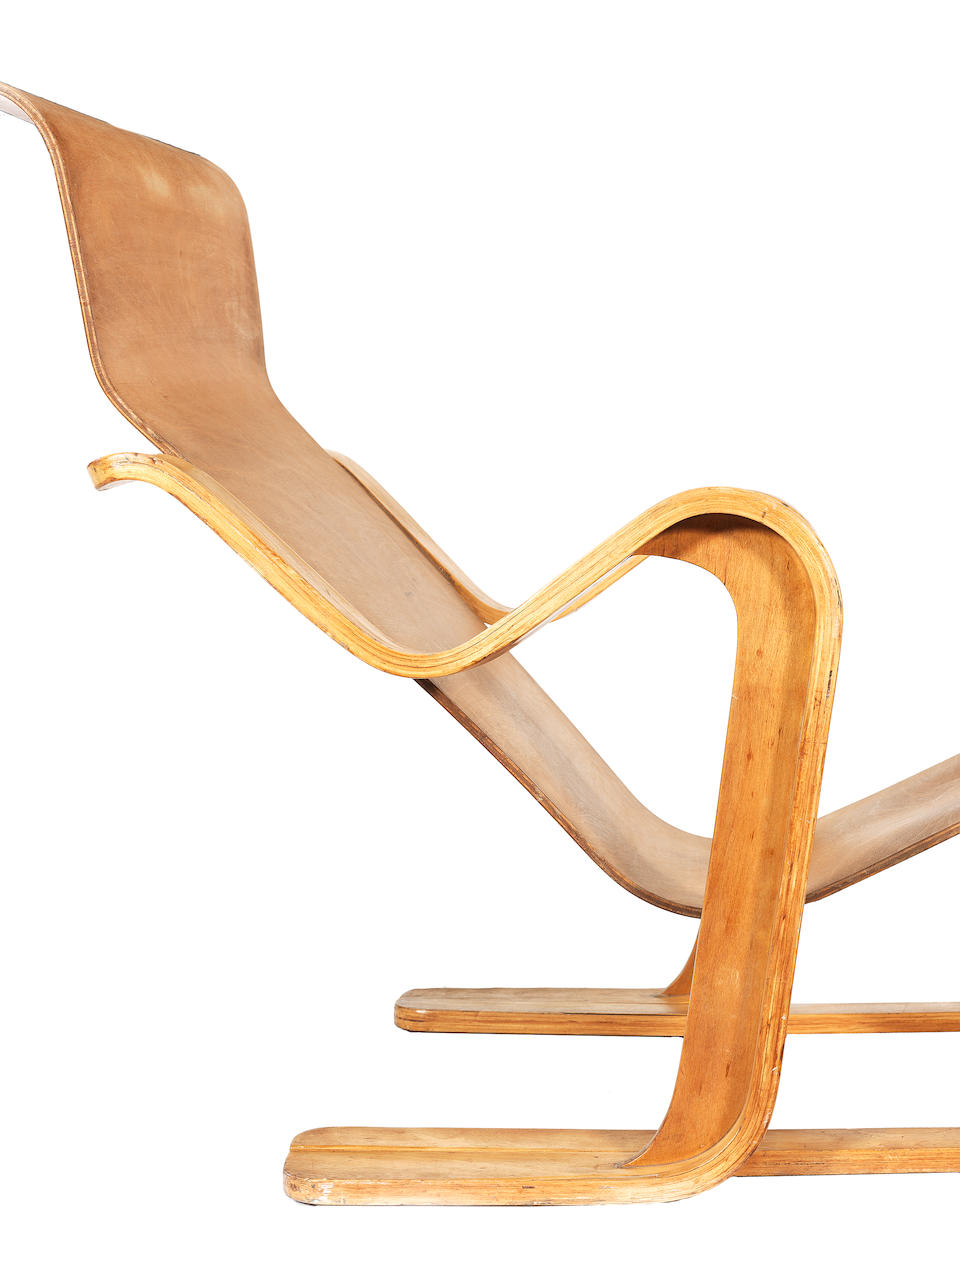 Marcel Breuer for Isokon Furniture Company A Long Chair designed and executed in 1936  paper label for Isokon Furniture Company, London, Isokon Long Chair birch faced moulded plywood  Height: 75 cm.                29 1/2 in. Length: 132 cm. approx.                51 15/16 in.